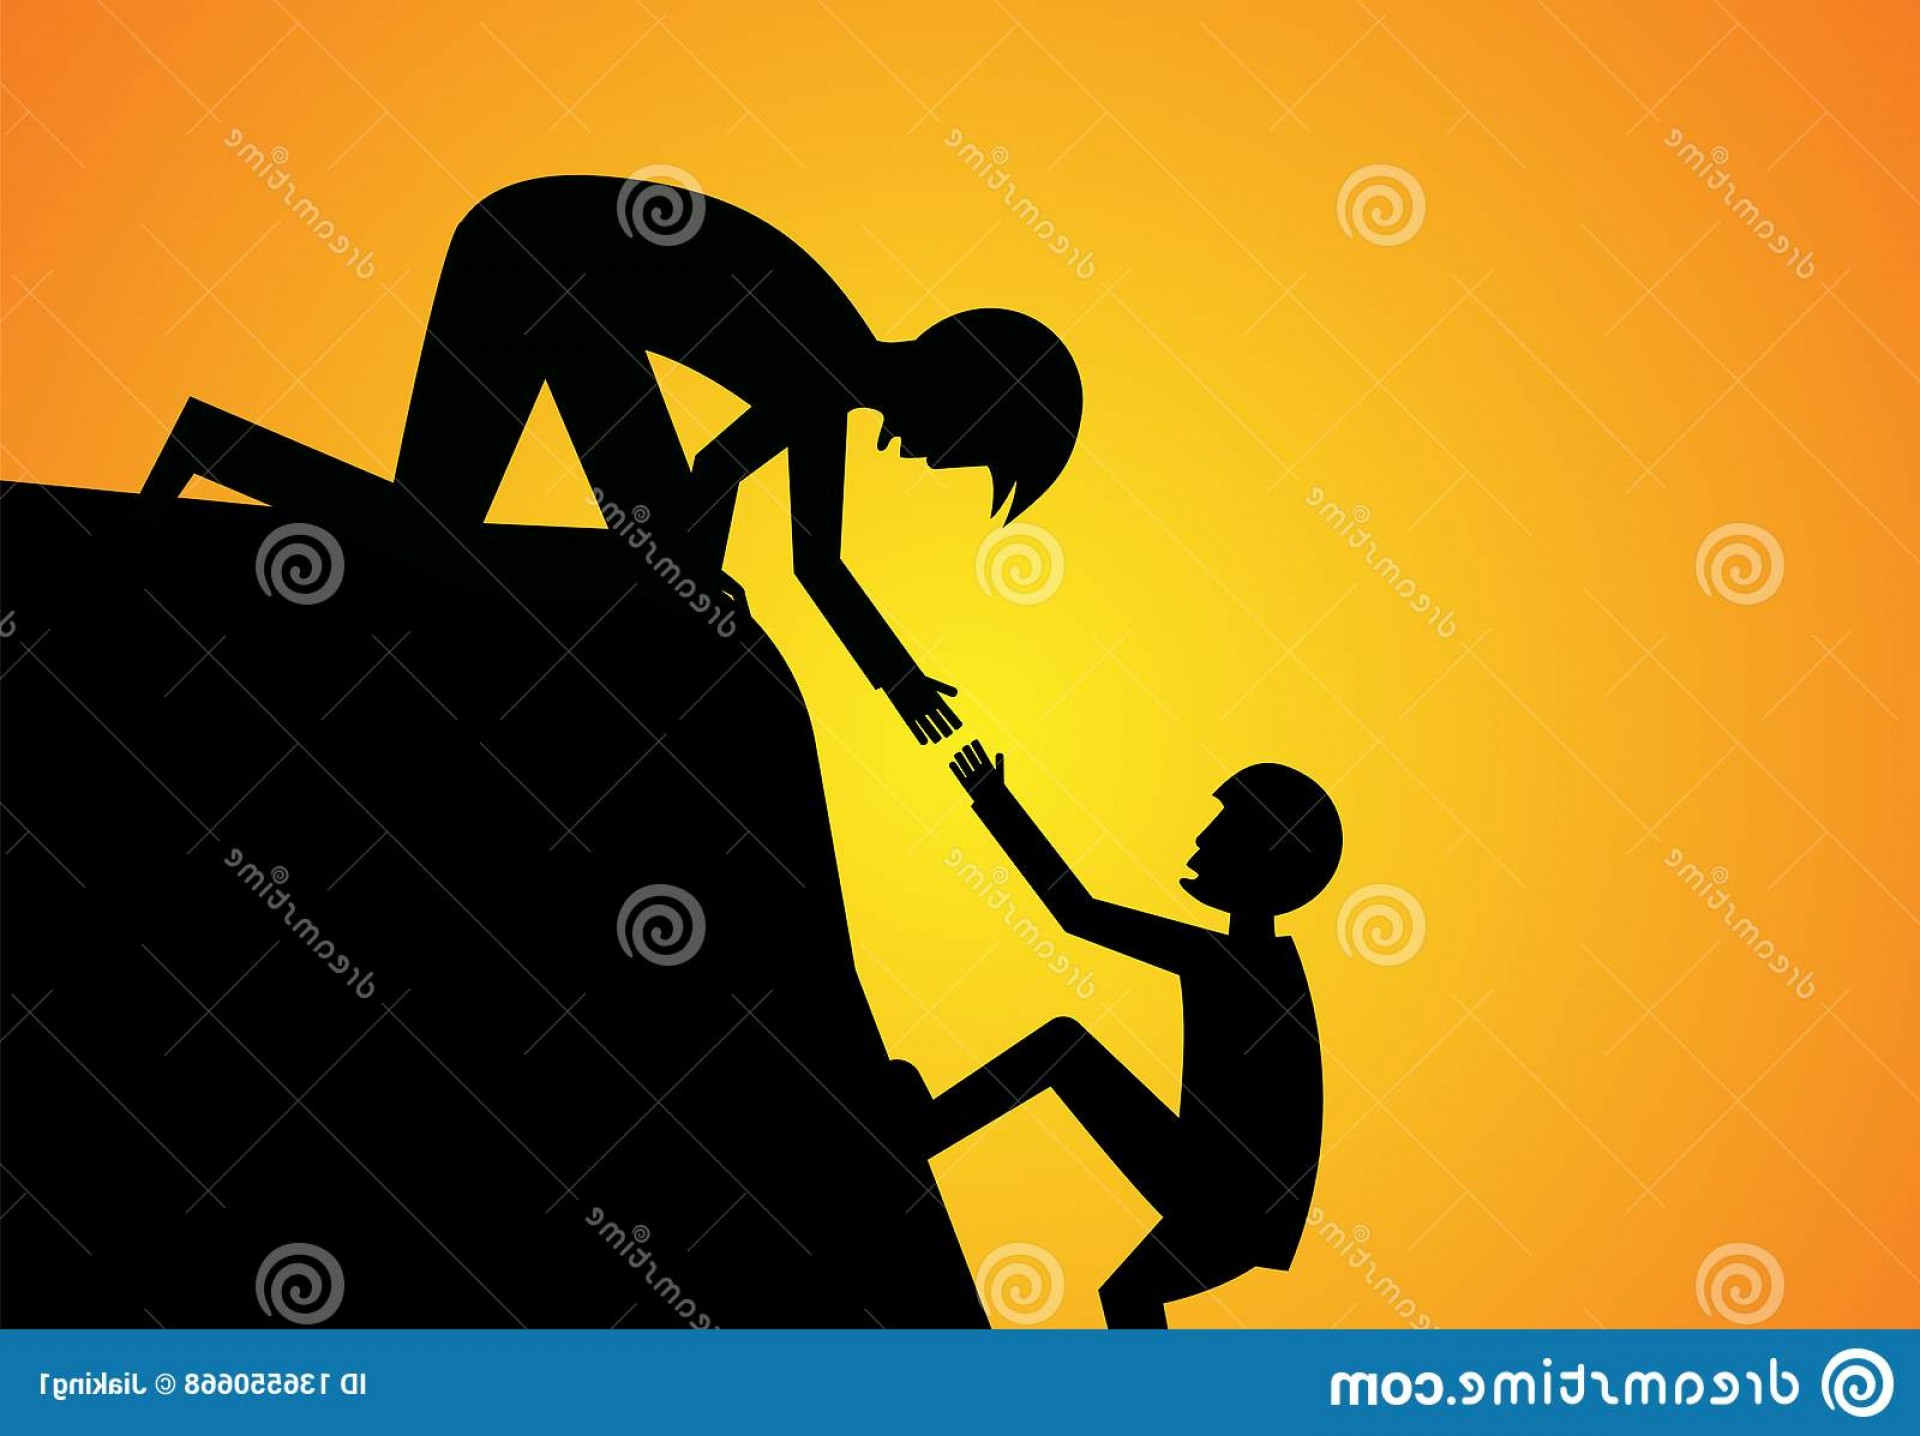 Climbing Silhouette Vector Art: Man Help His Friend To Climb Up Silhouette Vector Art Image